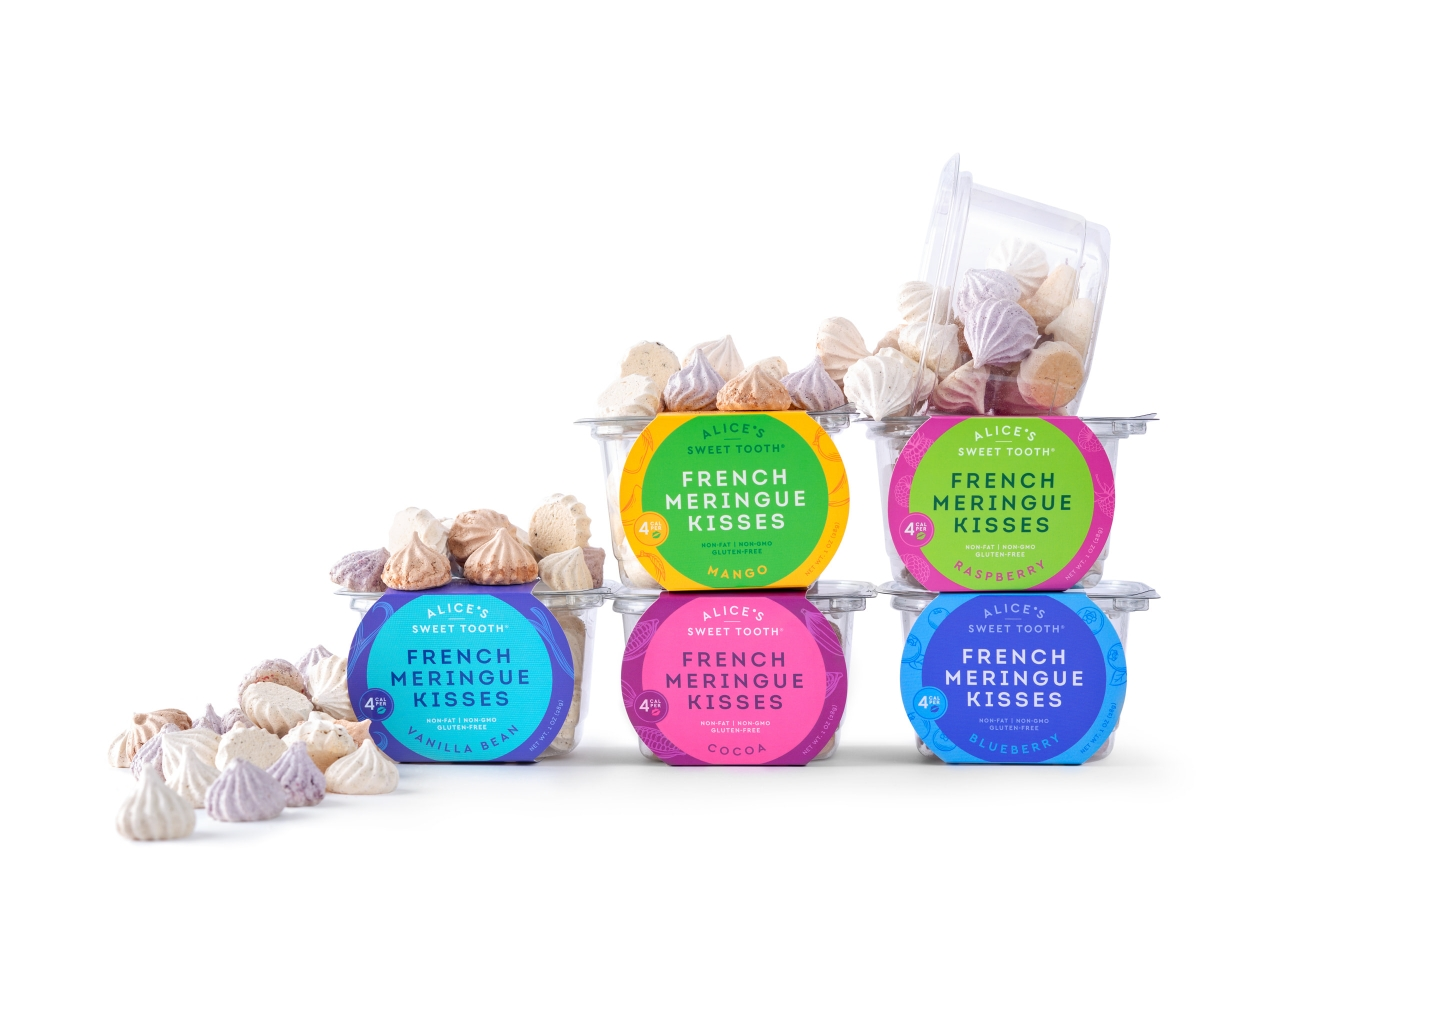 Alice's Sweet Tooth packaging flavors with meringues